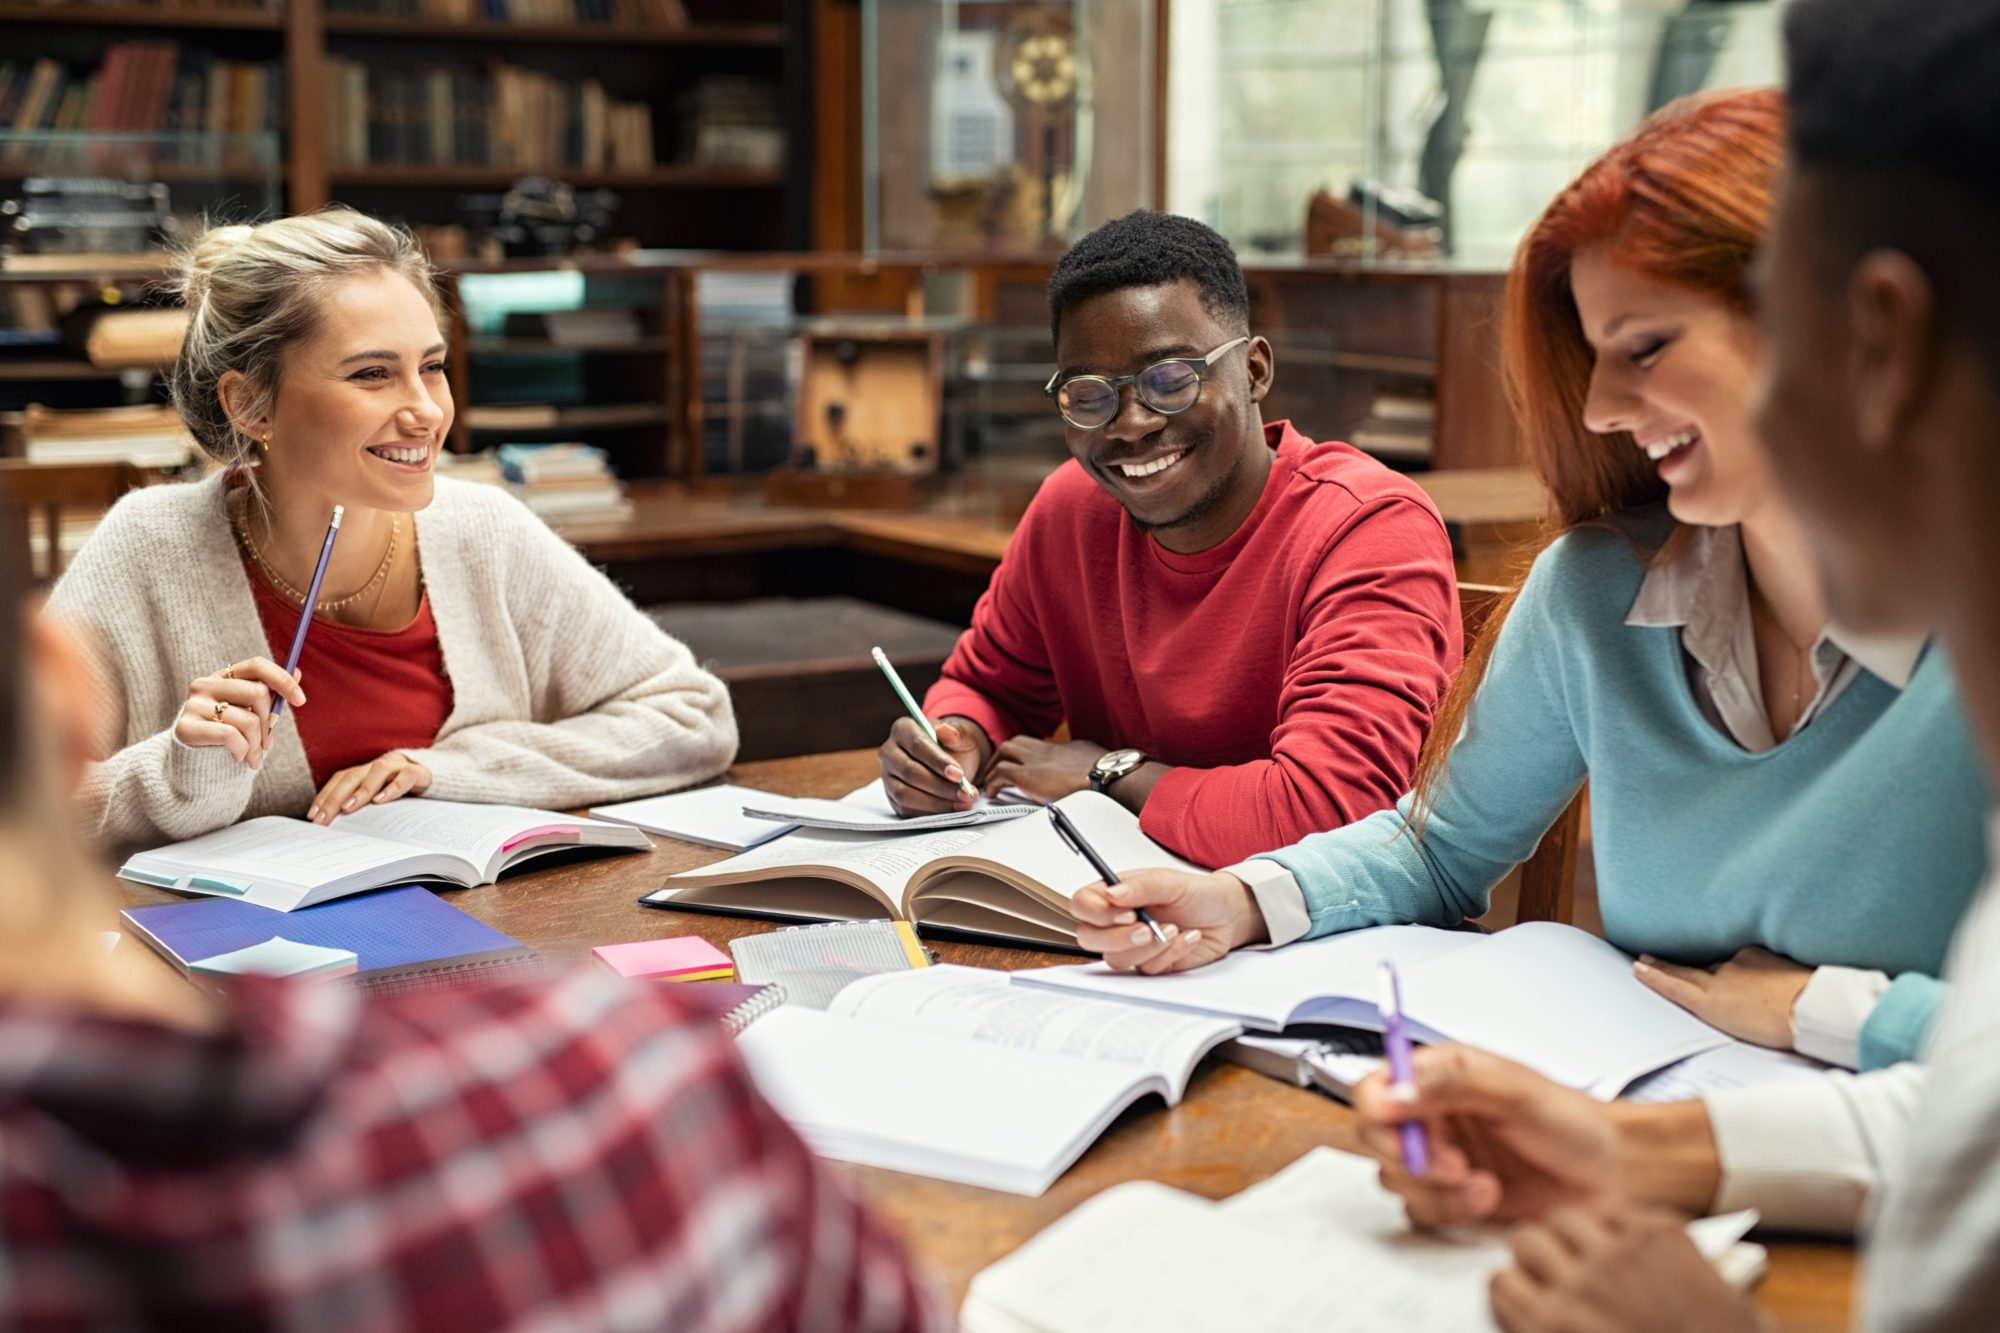 renters insurance for college students